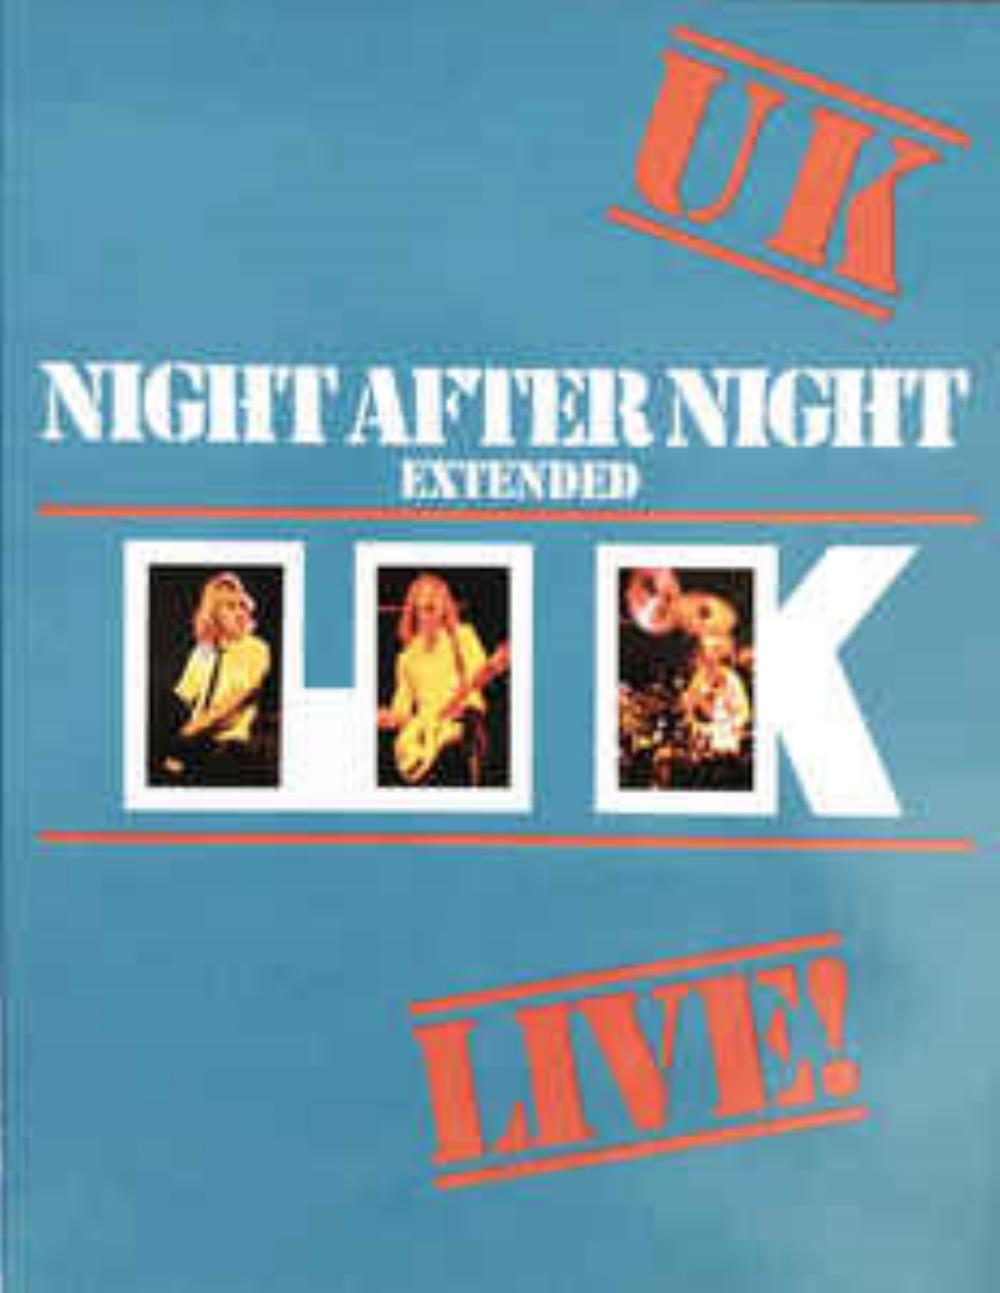 Night After Night Extended by UK album cover